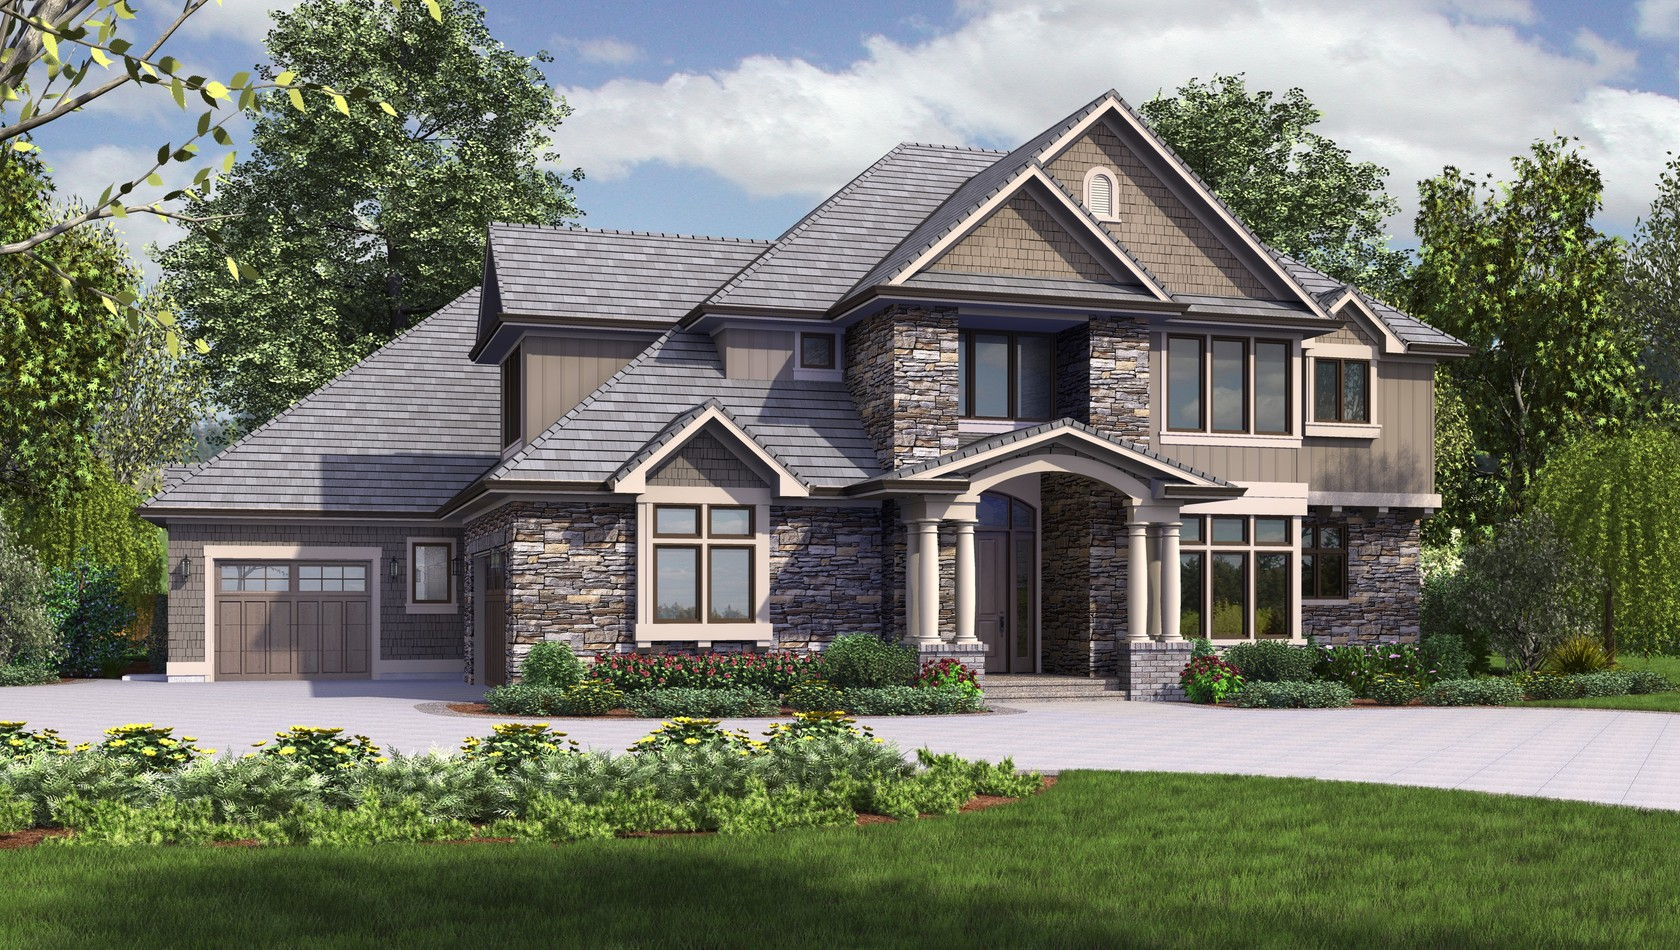 Main image for house plan 2473: The Rutledge